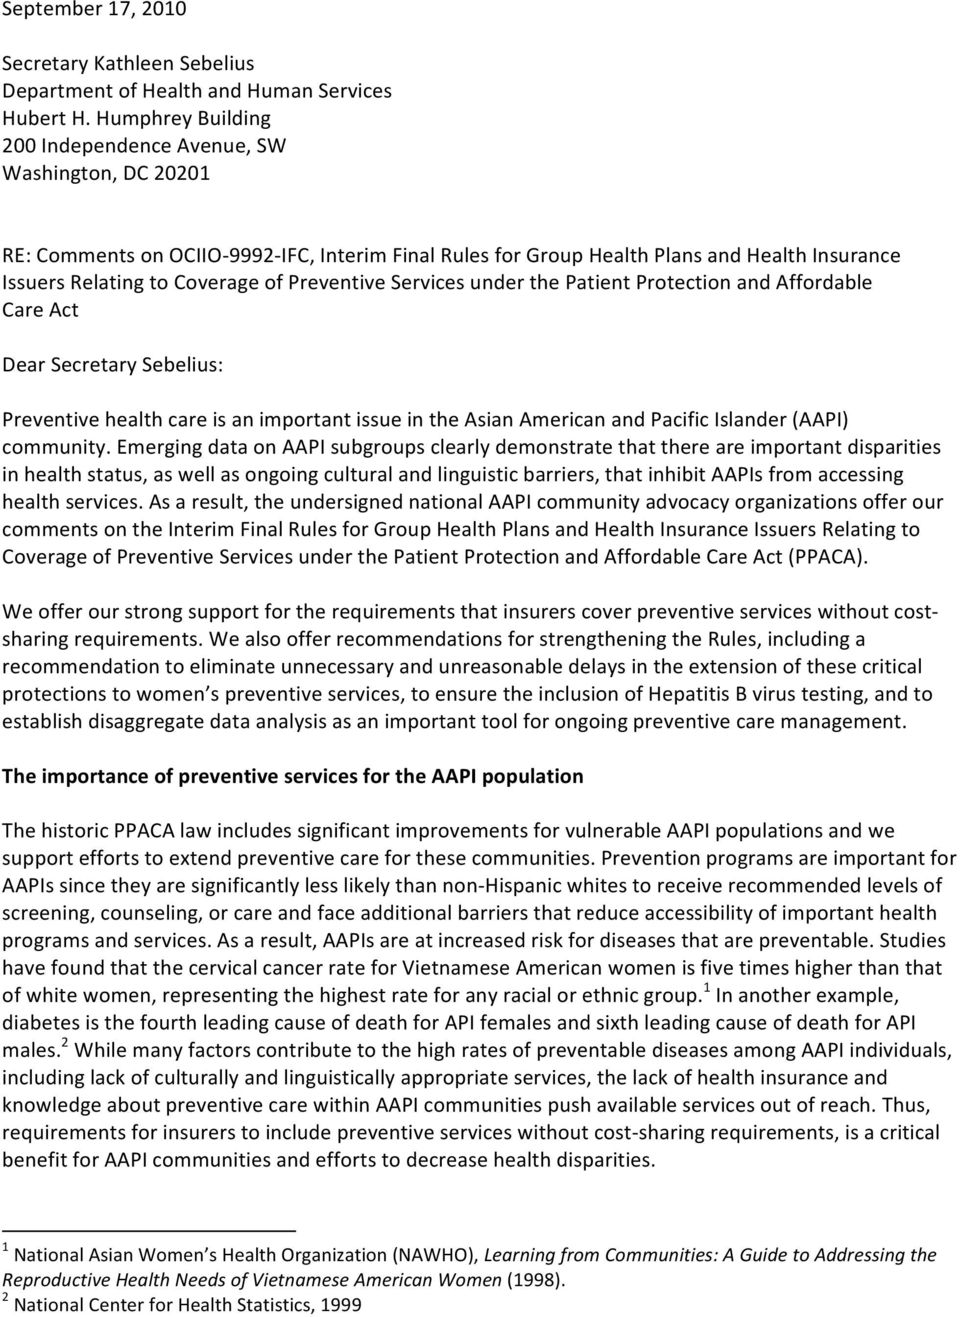 Preventive Services under the Patient Protection and Affordable Care Act Dear Secretary Sebelius: Preventive health care is an important issue in the Asian American and Pacific Islander (AAPI)